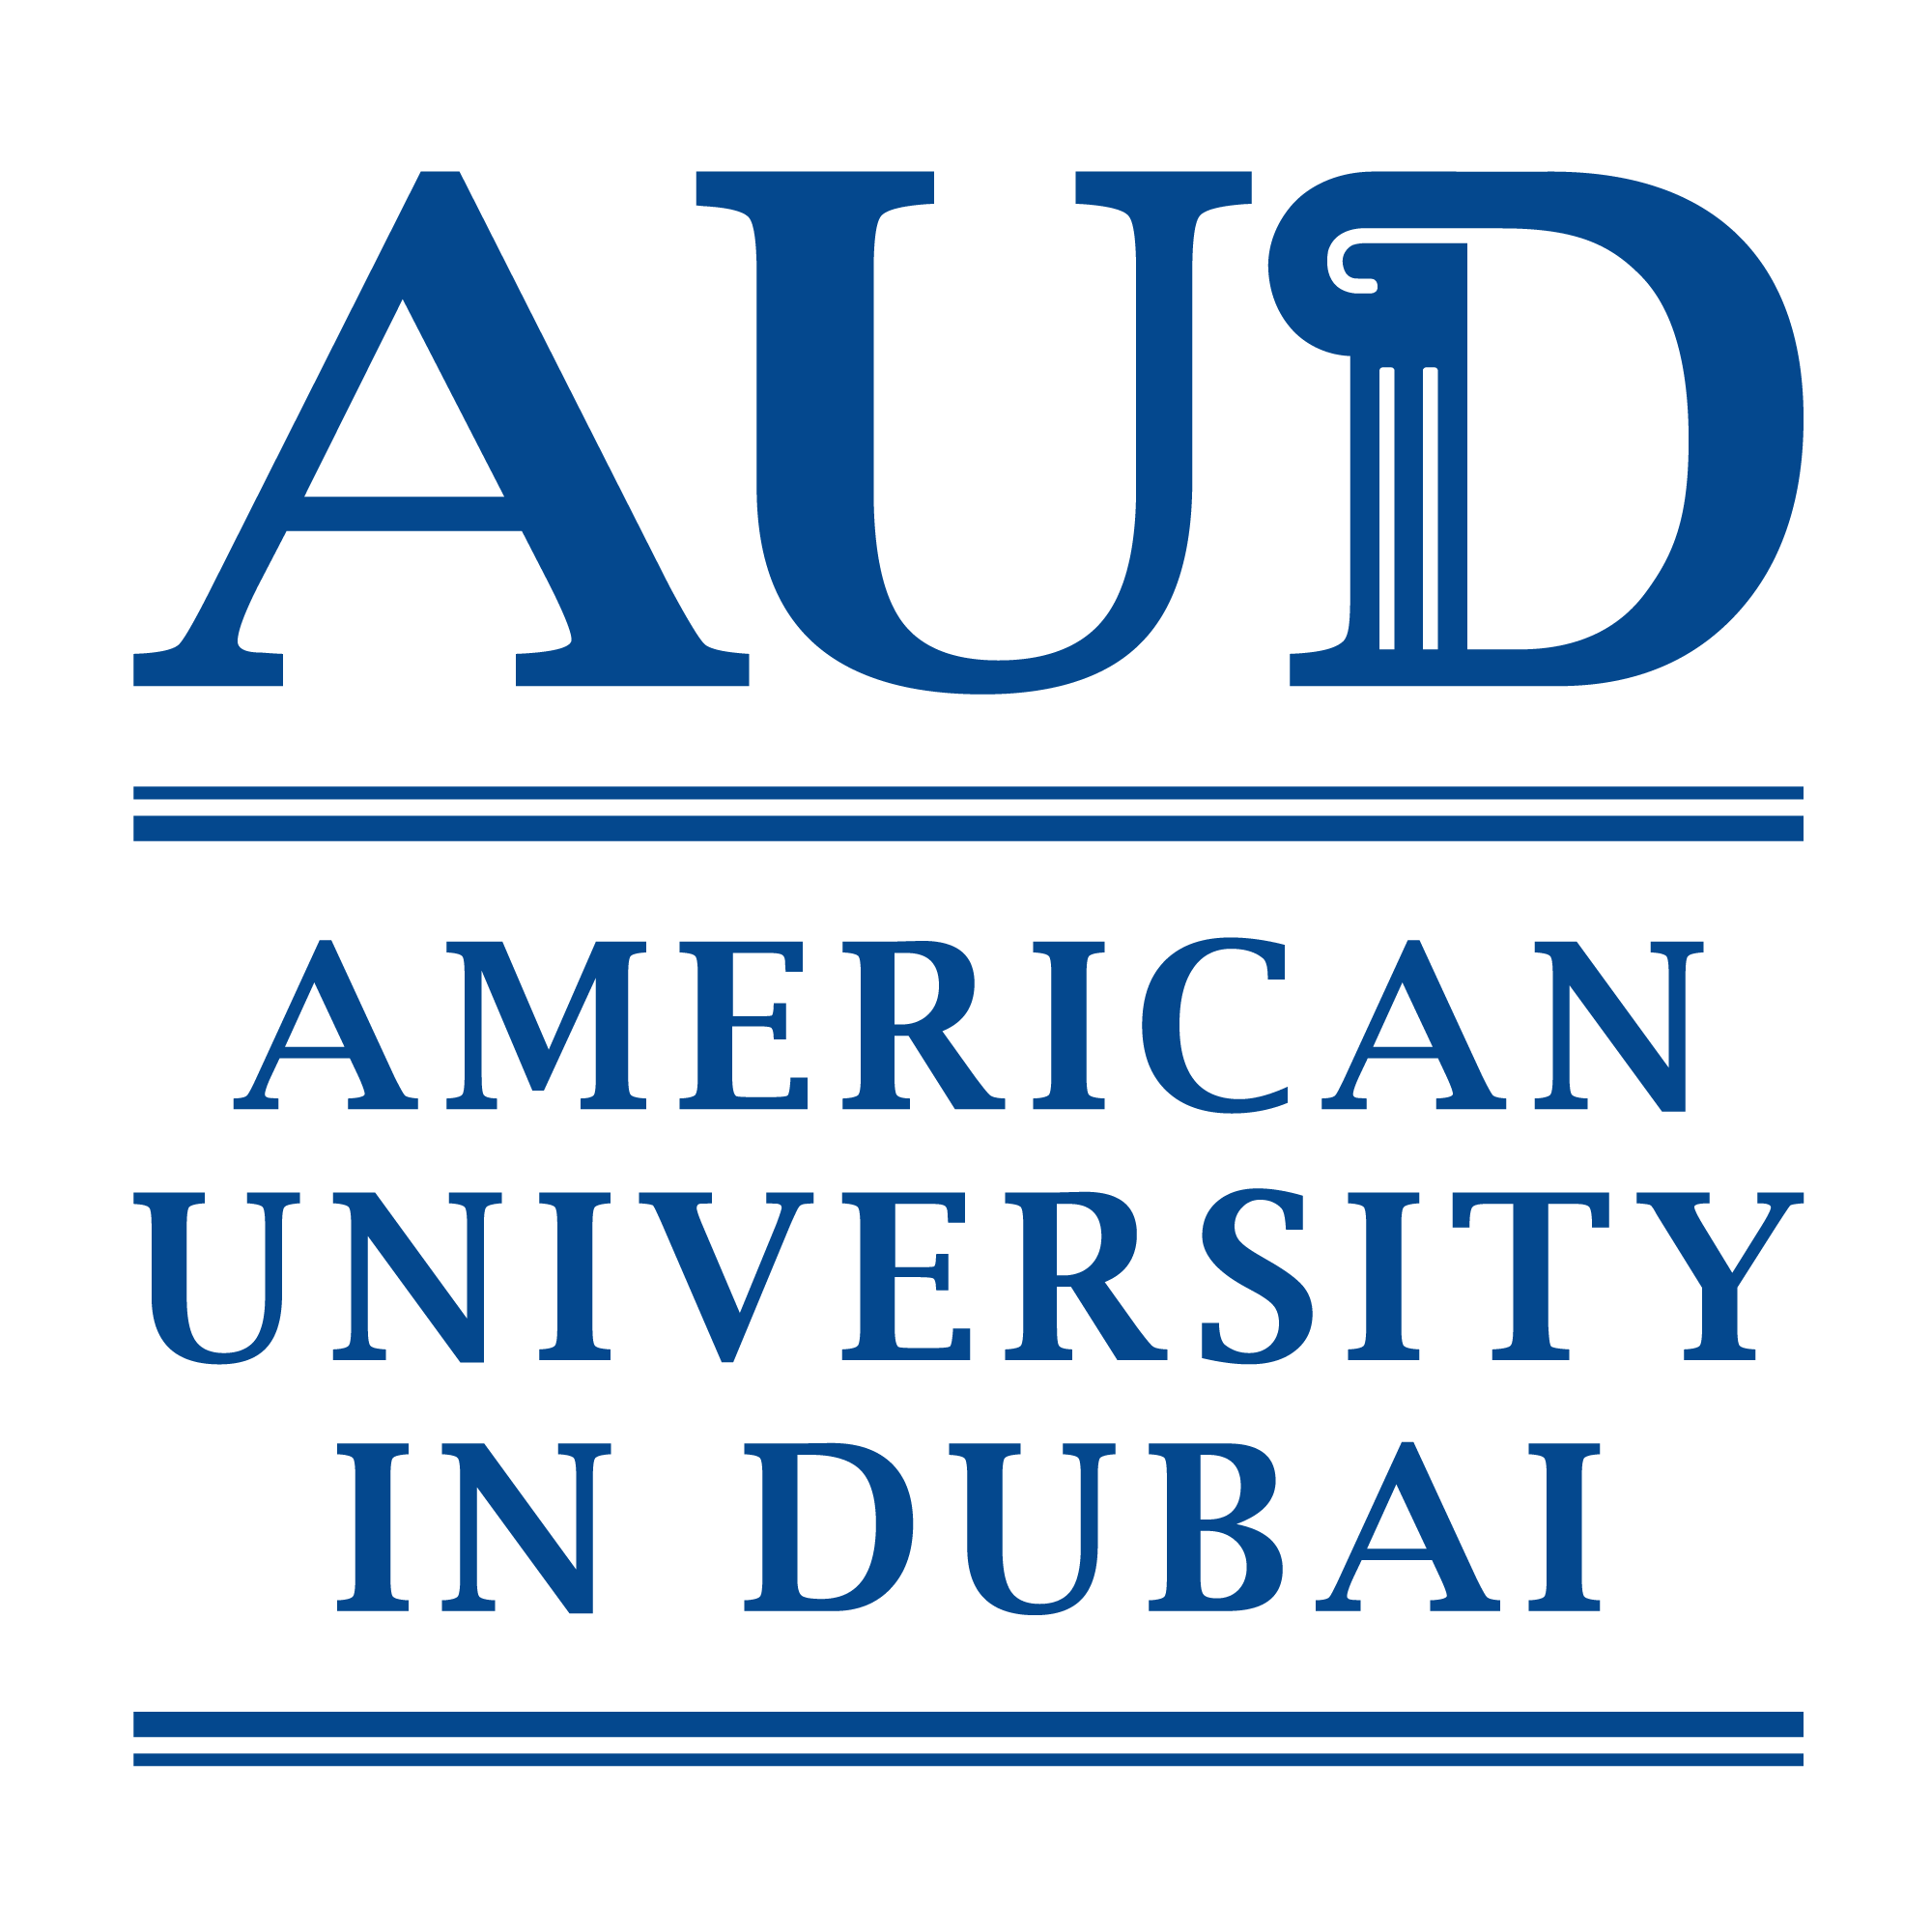 American University of Dubai